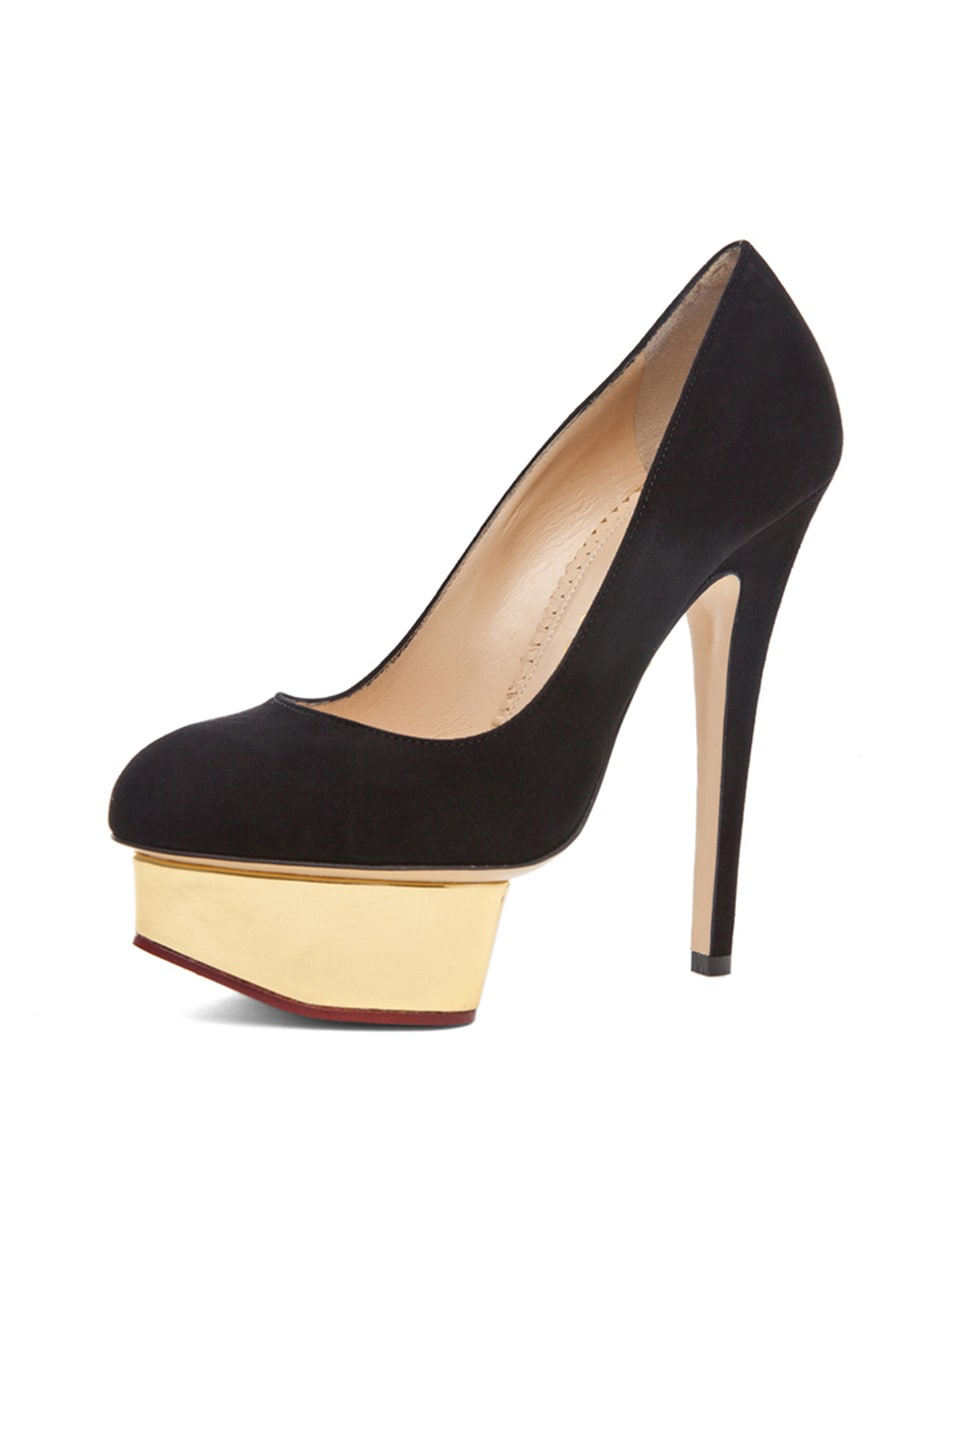 Image 2 of Charlotte Olympia Dolly Signature Court Island Suede Pumps in Black